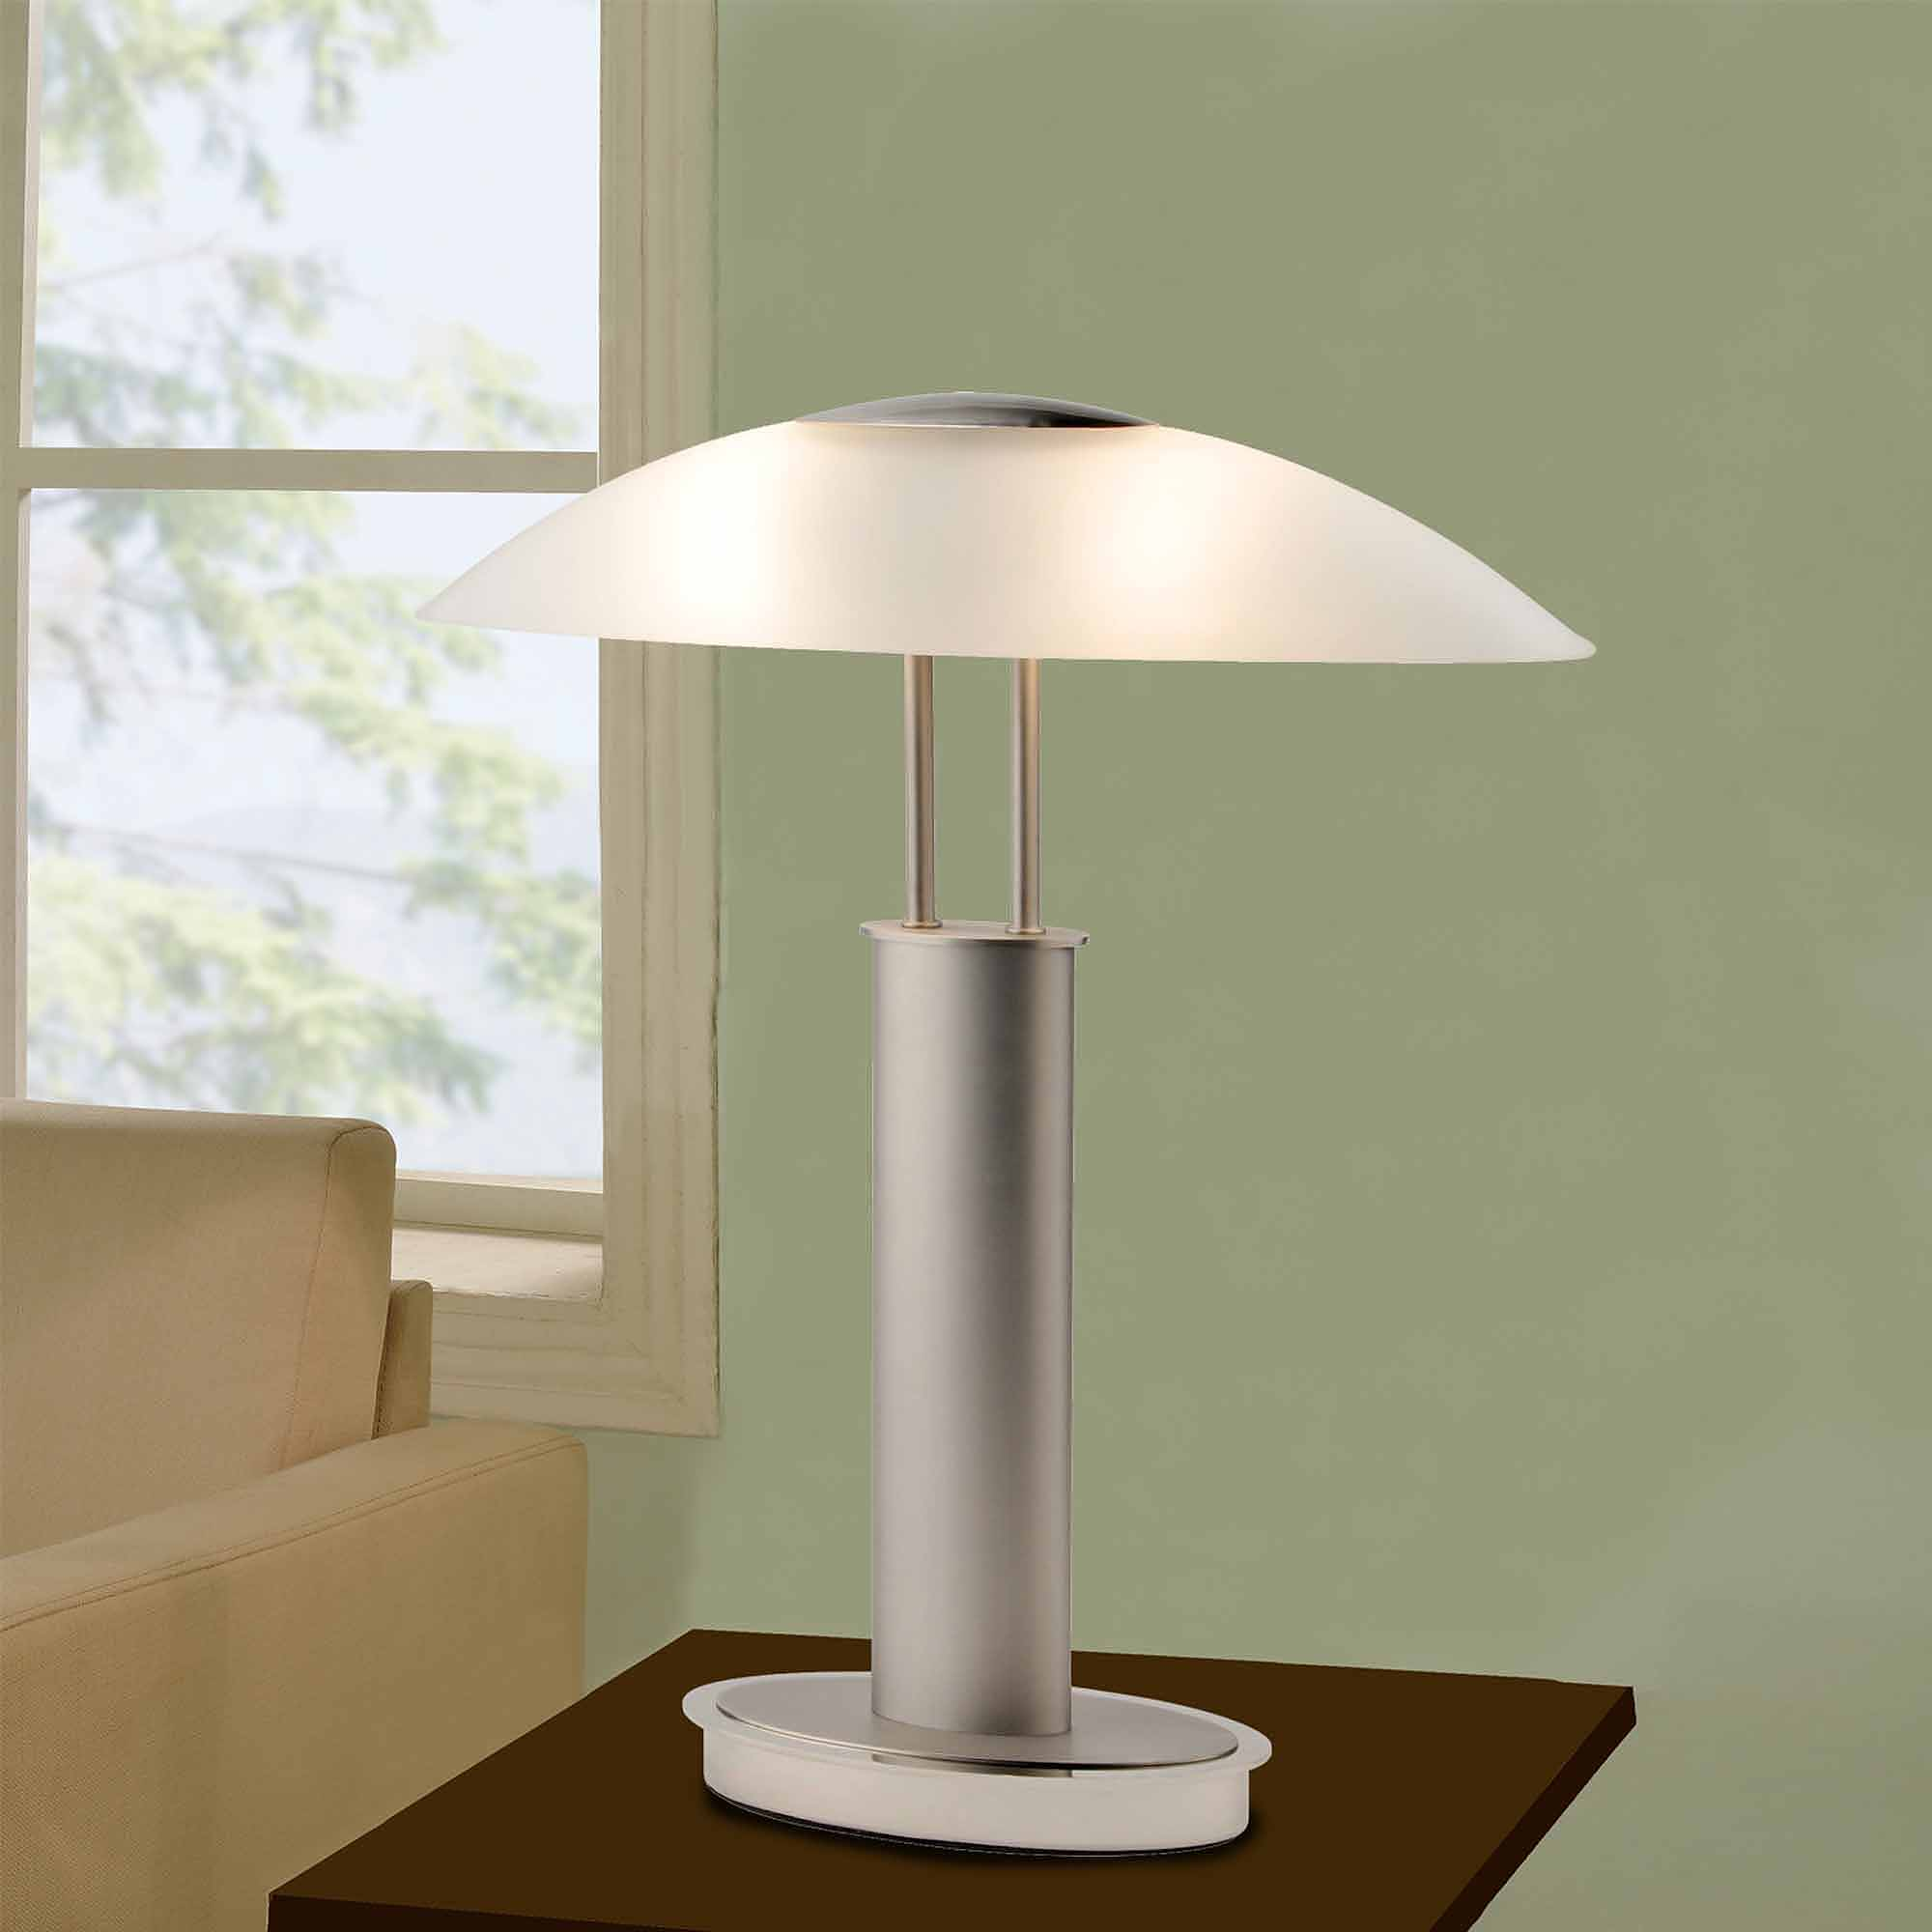 Artiva Usa 18 5 Avalon 2 Light Satin Nickel Touch Desk Lamp With Oval Frosted Gl Shade